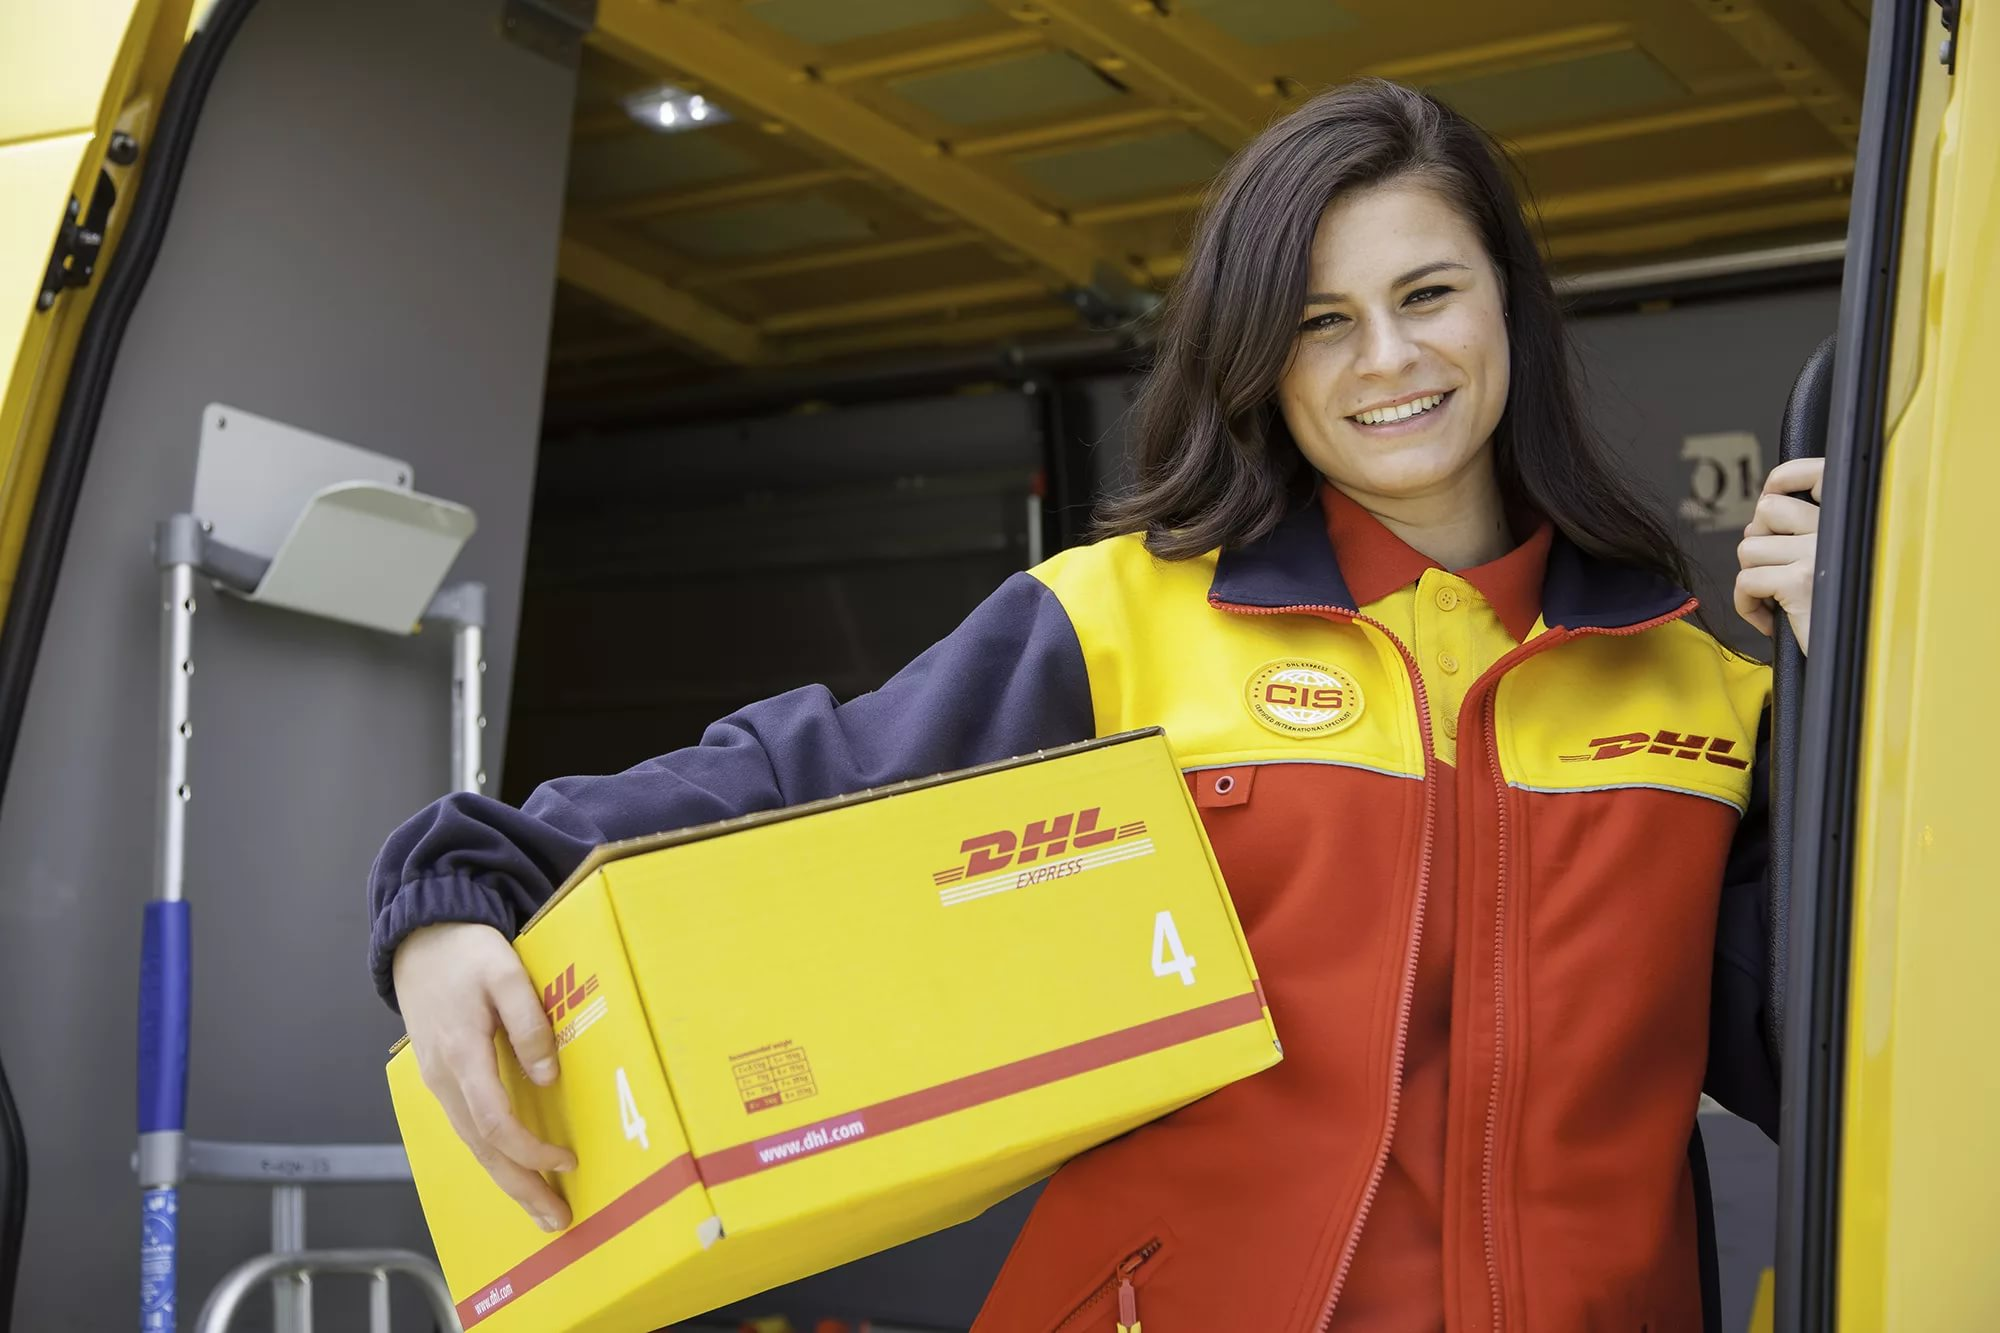 working in DHL